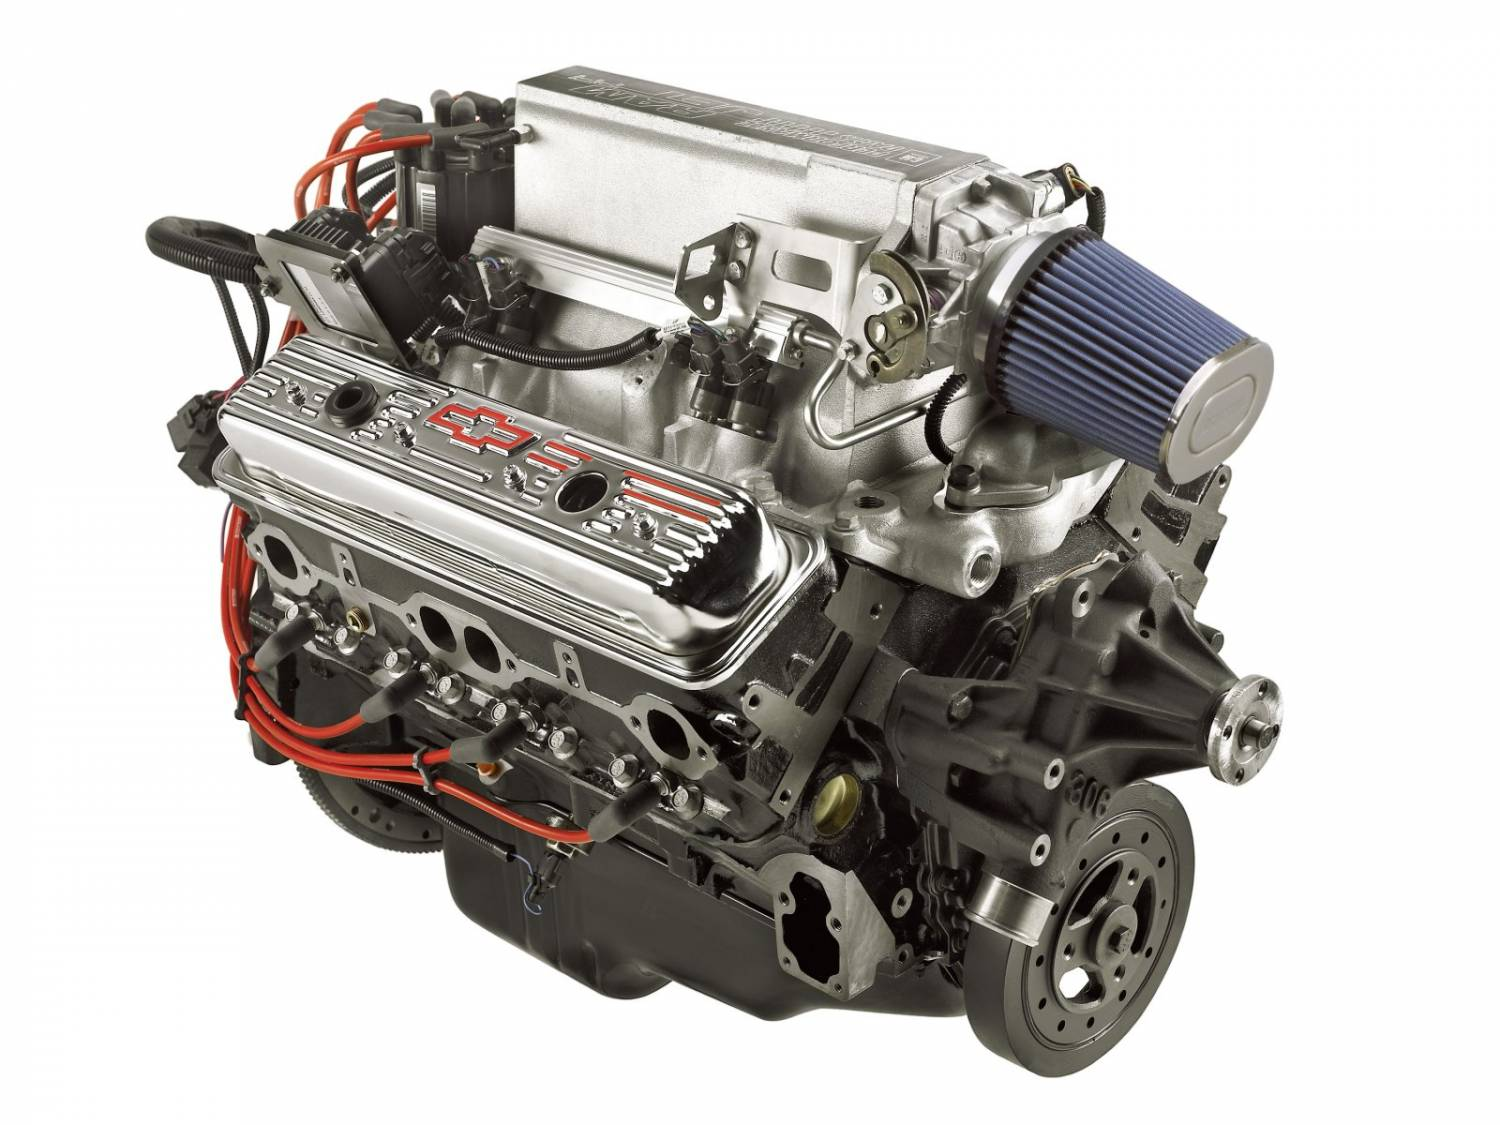 Chevrolet Performance Parts Cpsrj350t56. Chevrolet Performance Parts Cpsrj350t56 Ram Jet 350 Engine With T56 6 Speed 75000 Rebate. Chevrolet. Front View Chevy 350 Engine Schematic At Scoala.co